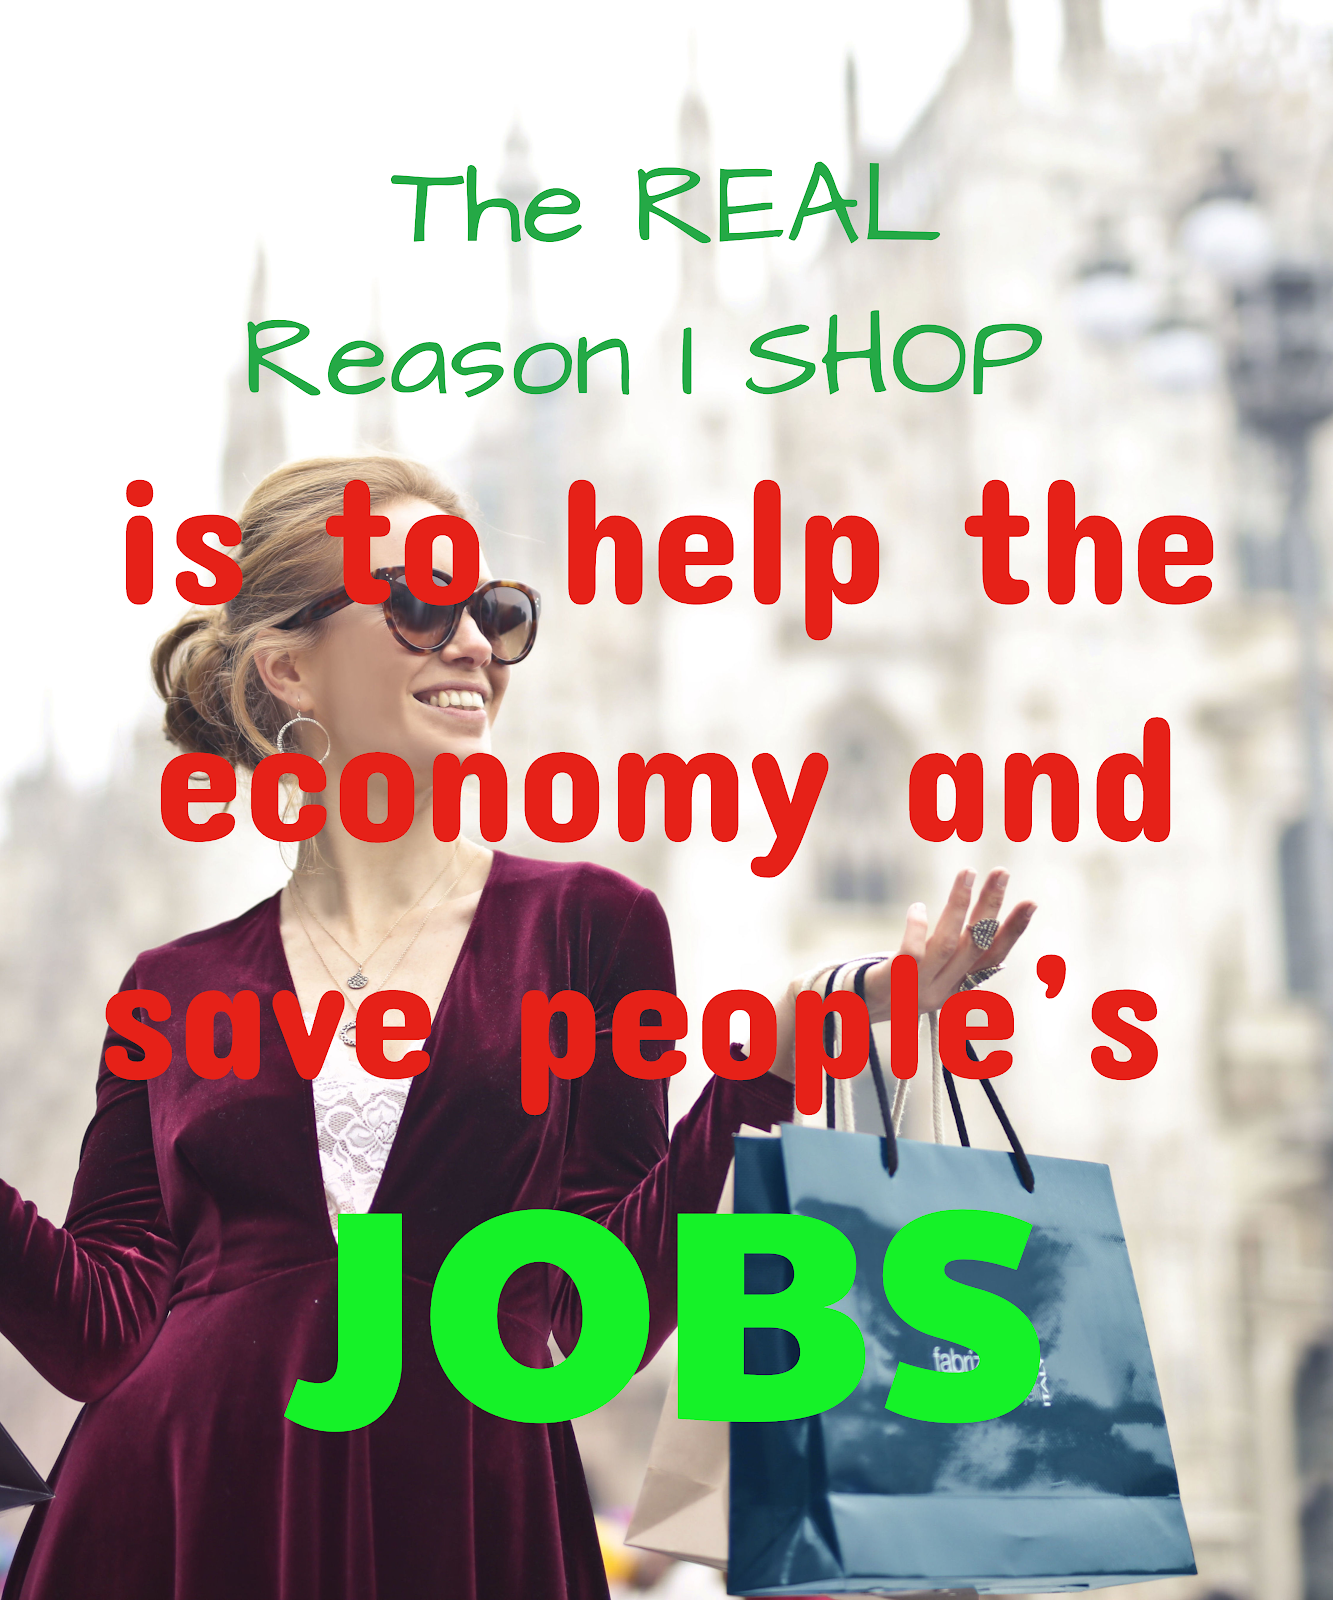 The REAL reason I SHOP is to help the economy and save people's JOBS